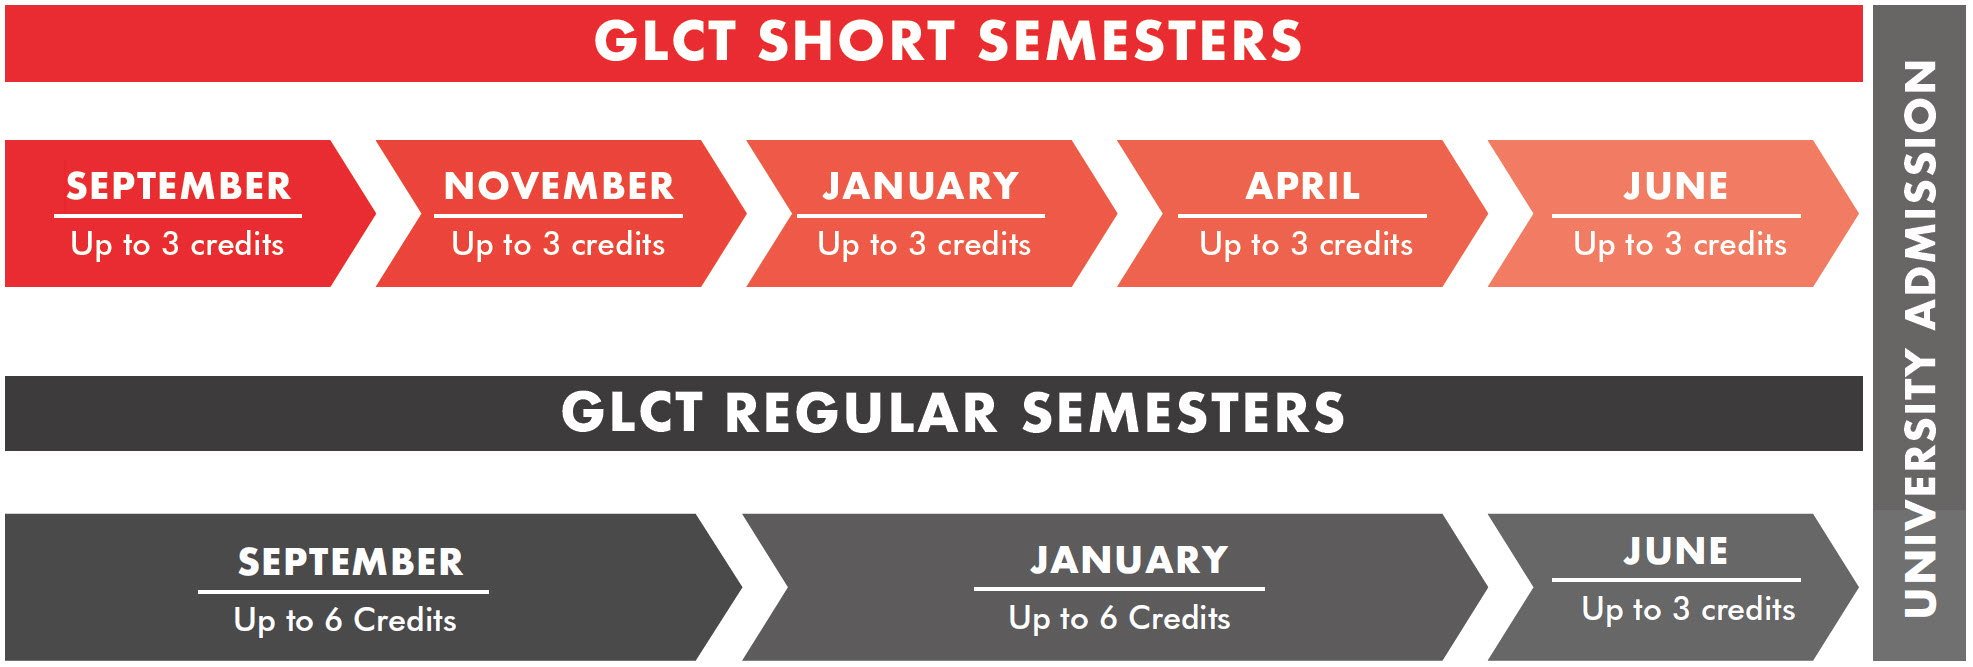 GLCT Short semesters and regular semesters